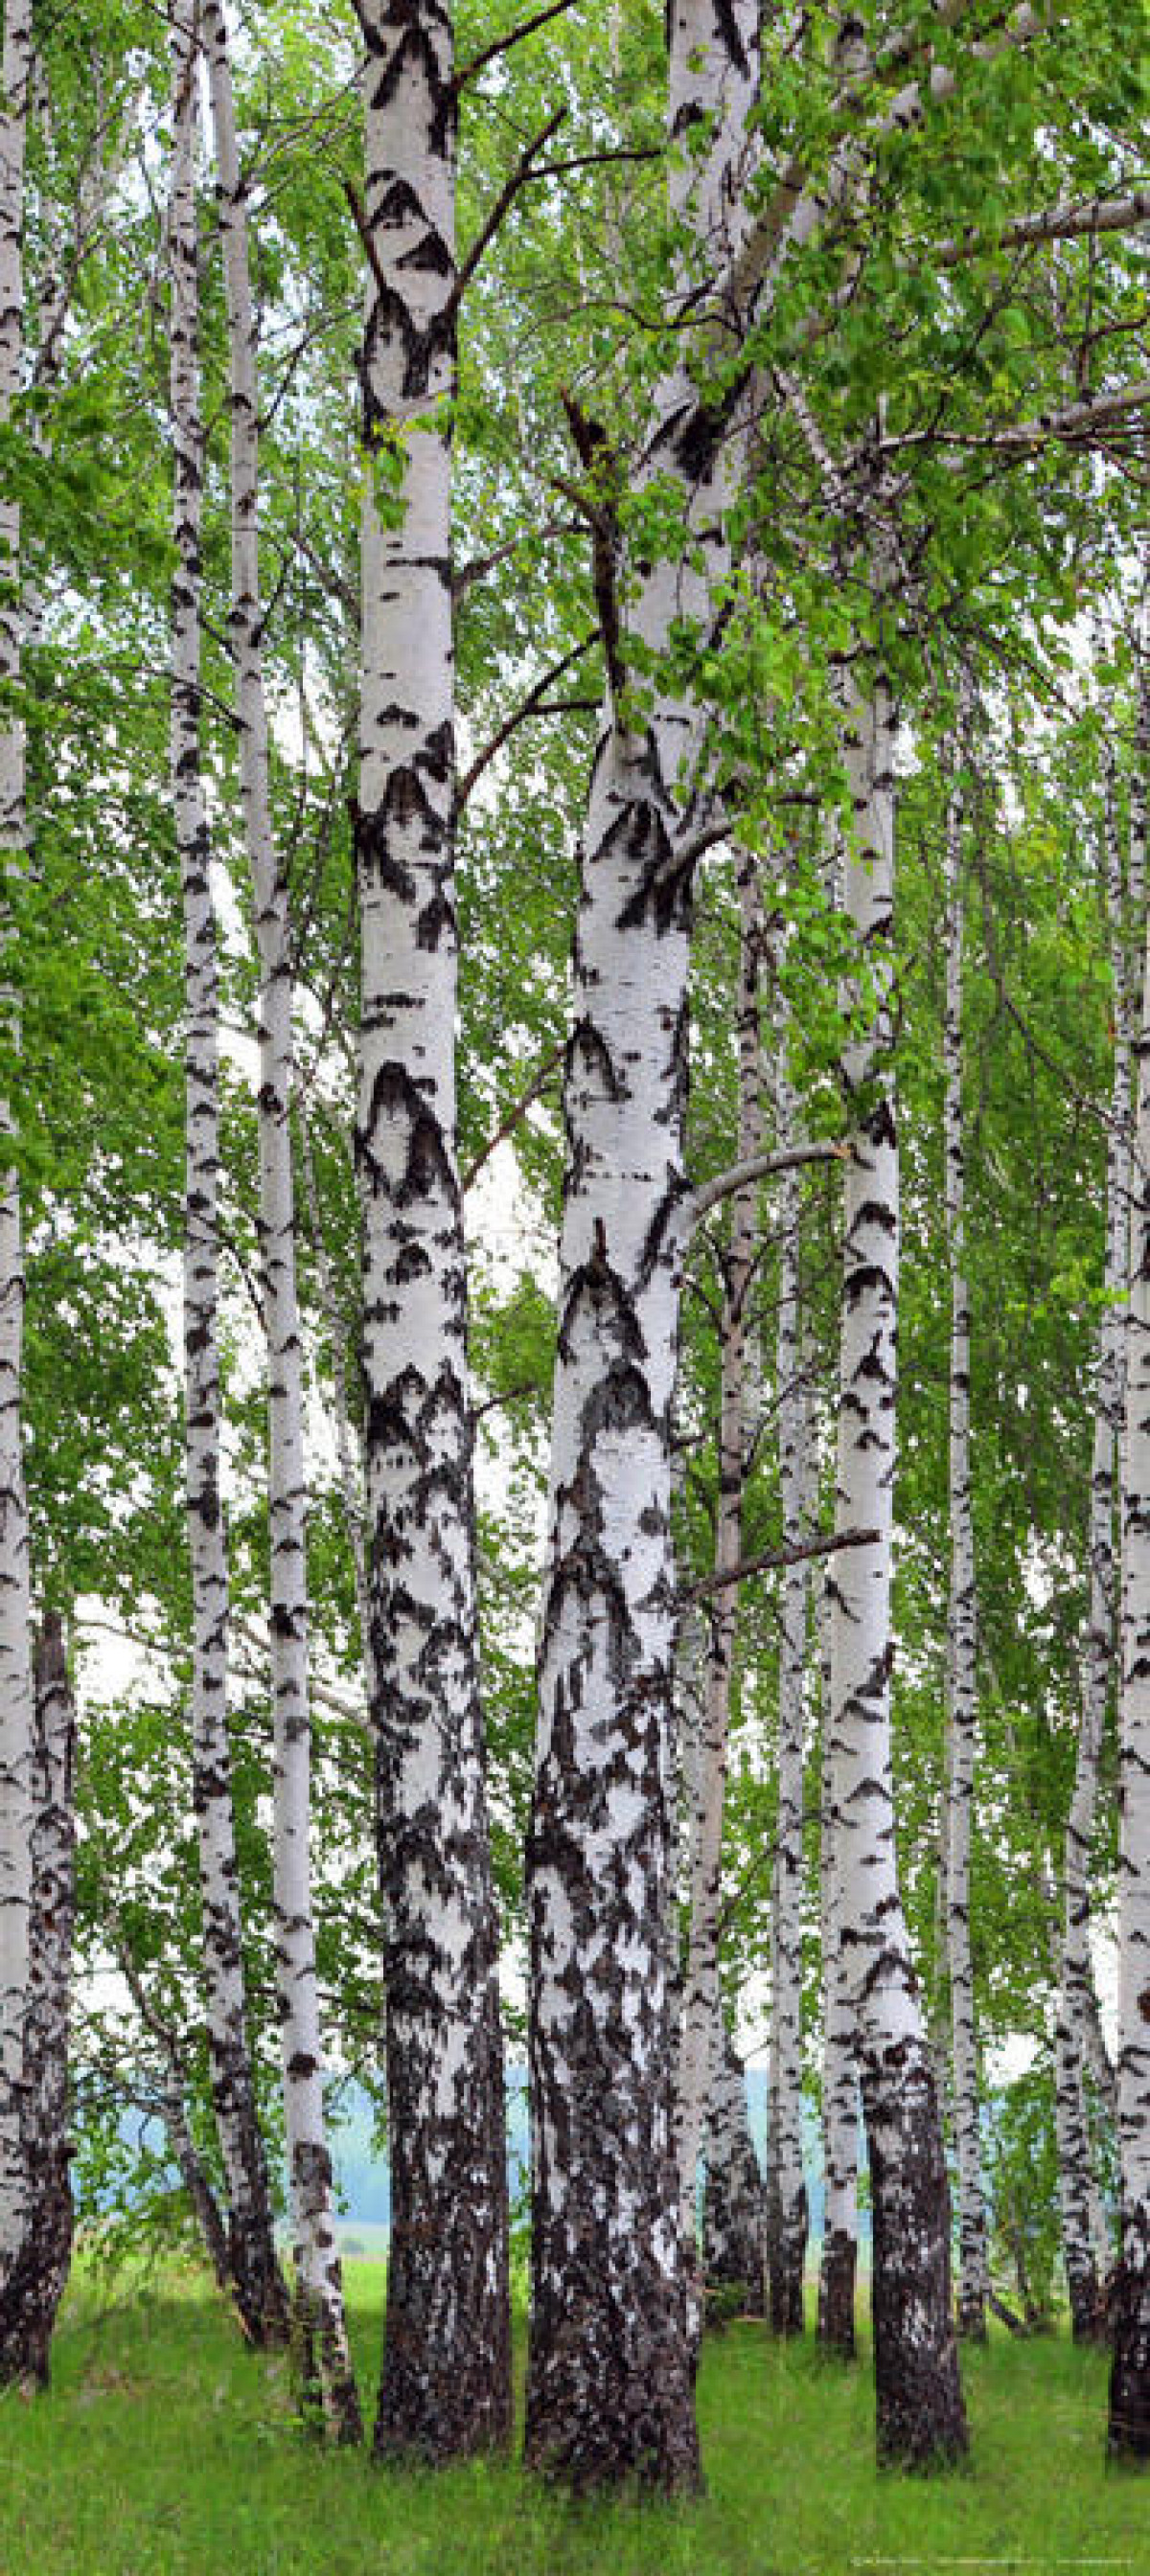 Birch's wood, paper photo mural, 90x202 cm, 1 part